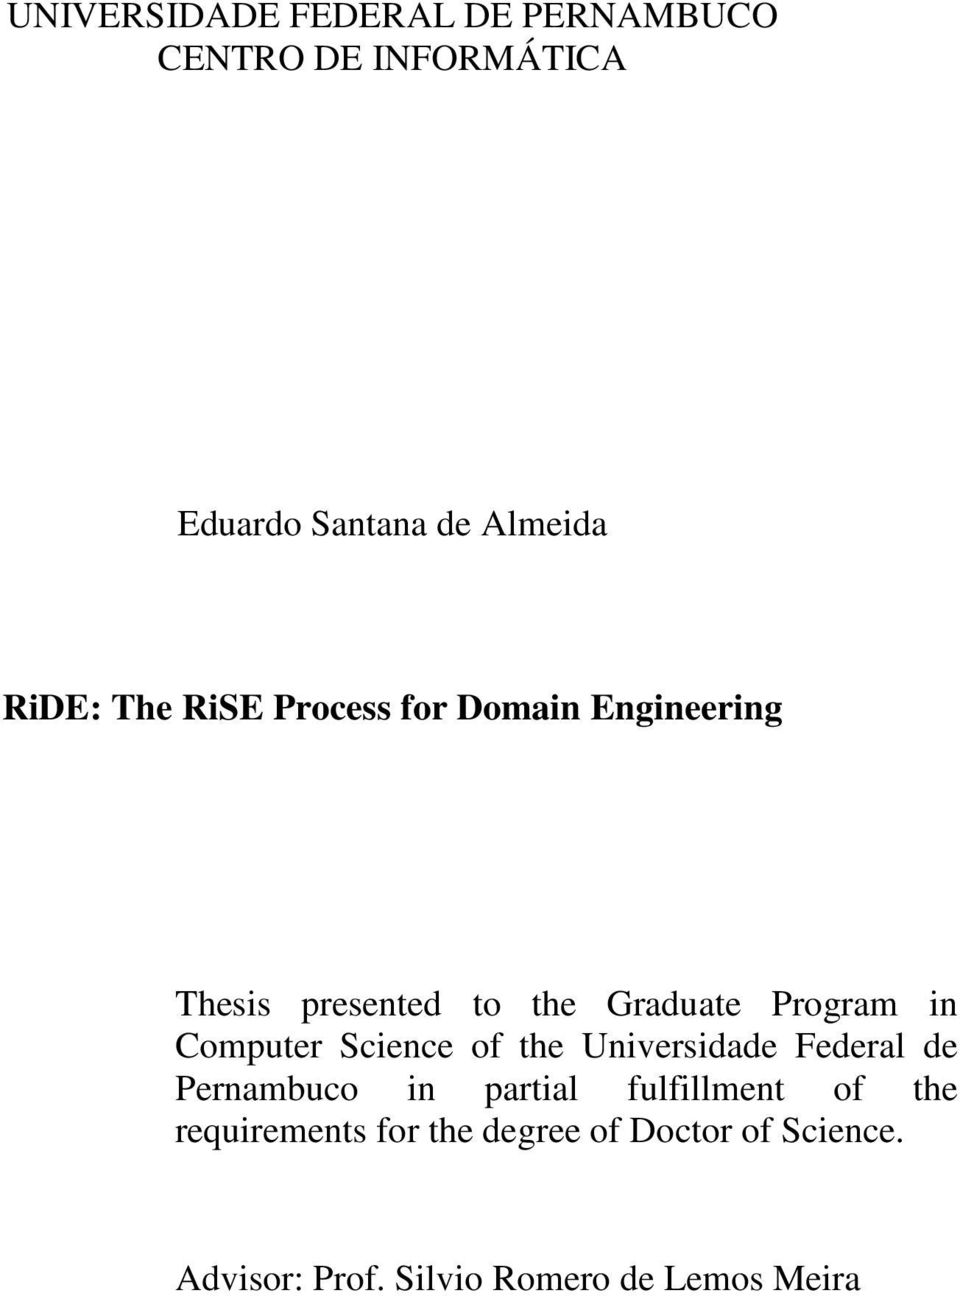 in Computer Science of the Universidade Federal de Pernambuco in partial fulfillment of